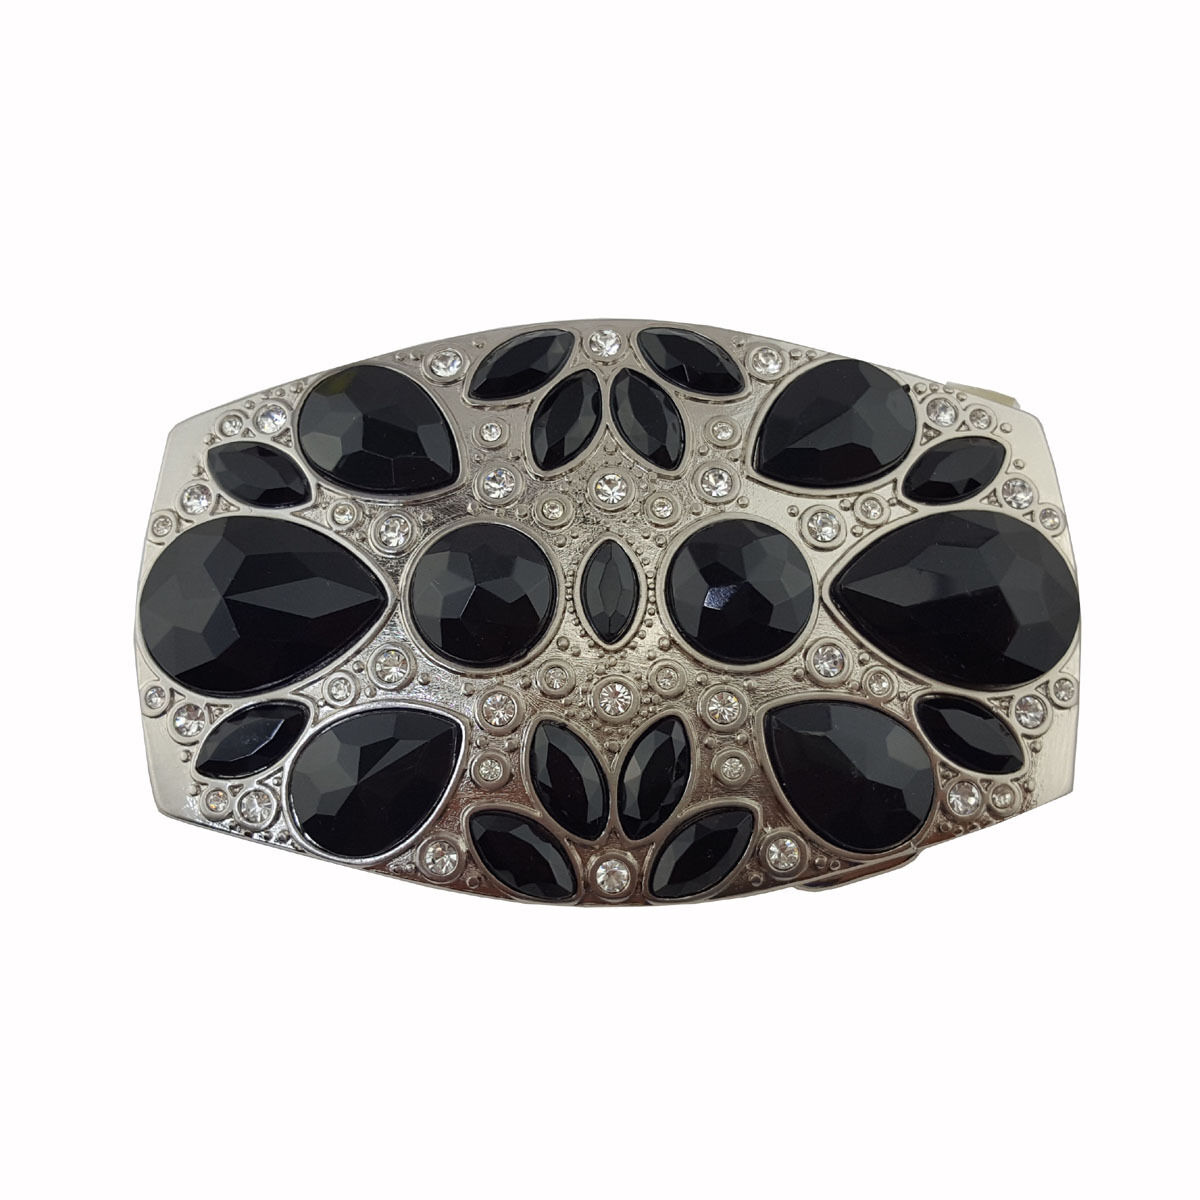 Silver Buckle with Black stone